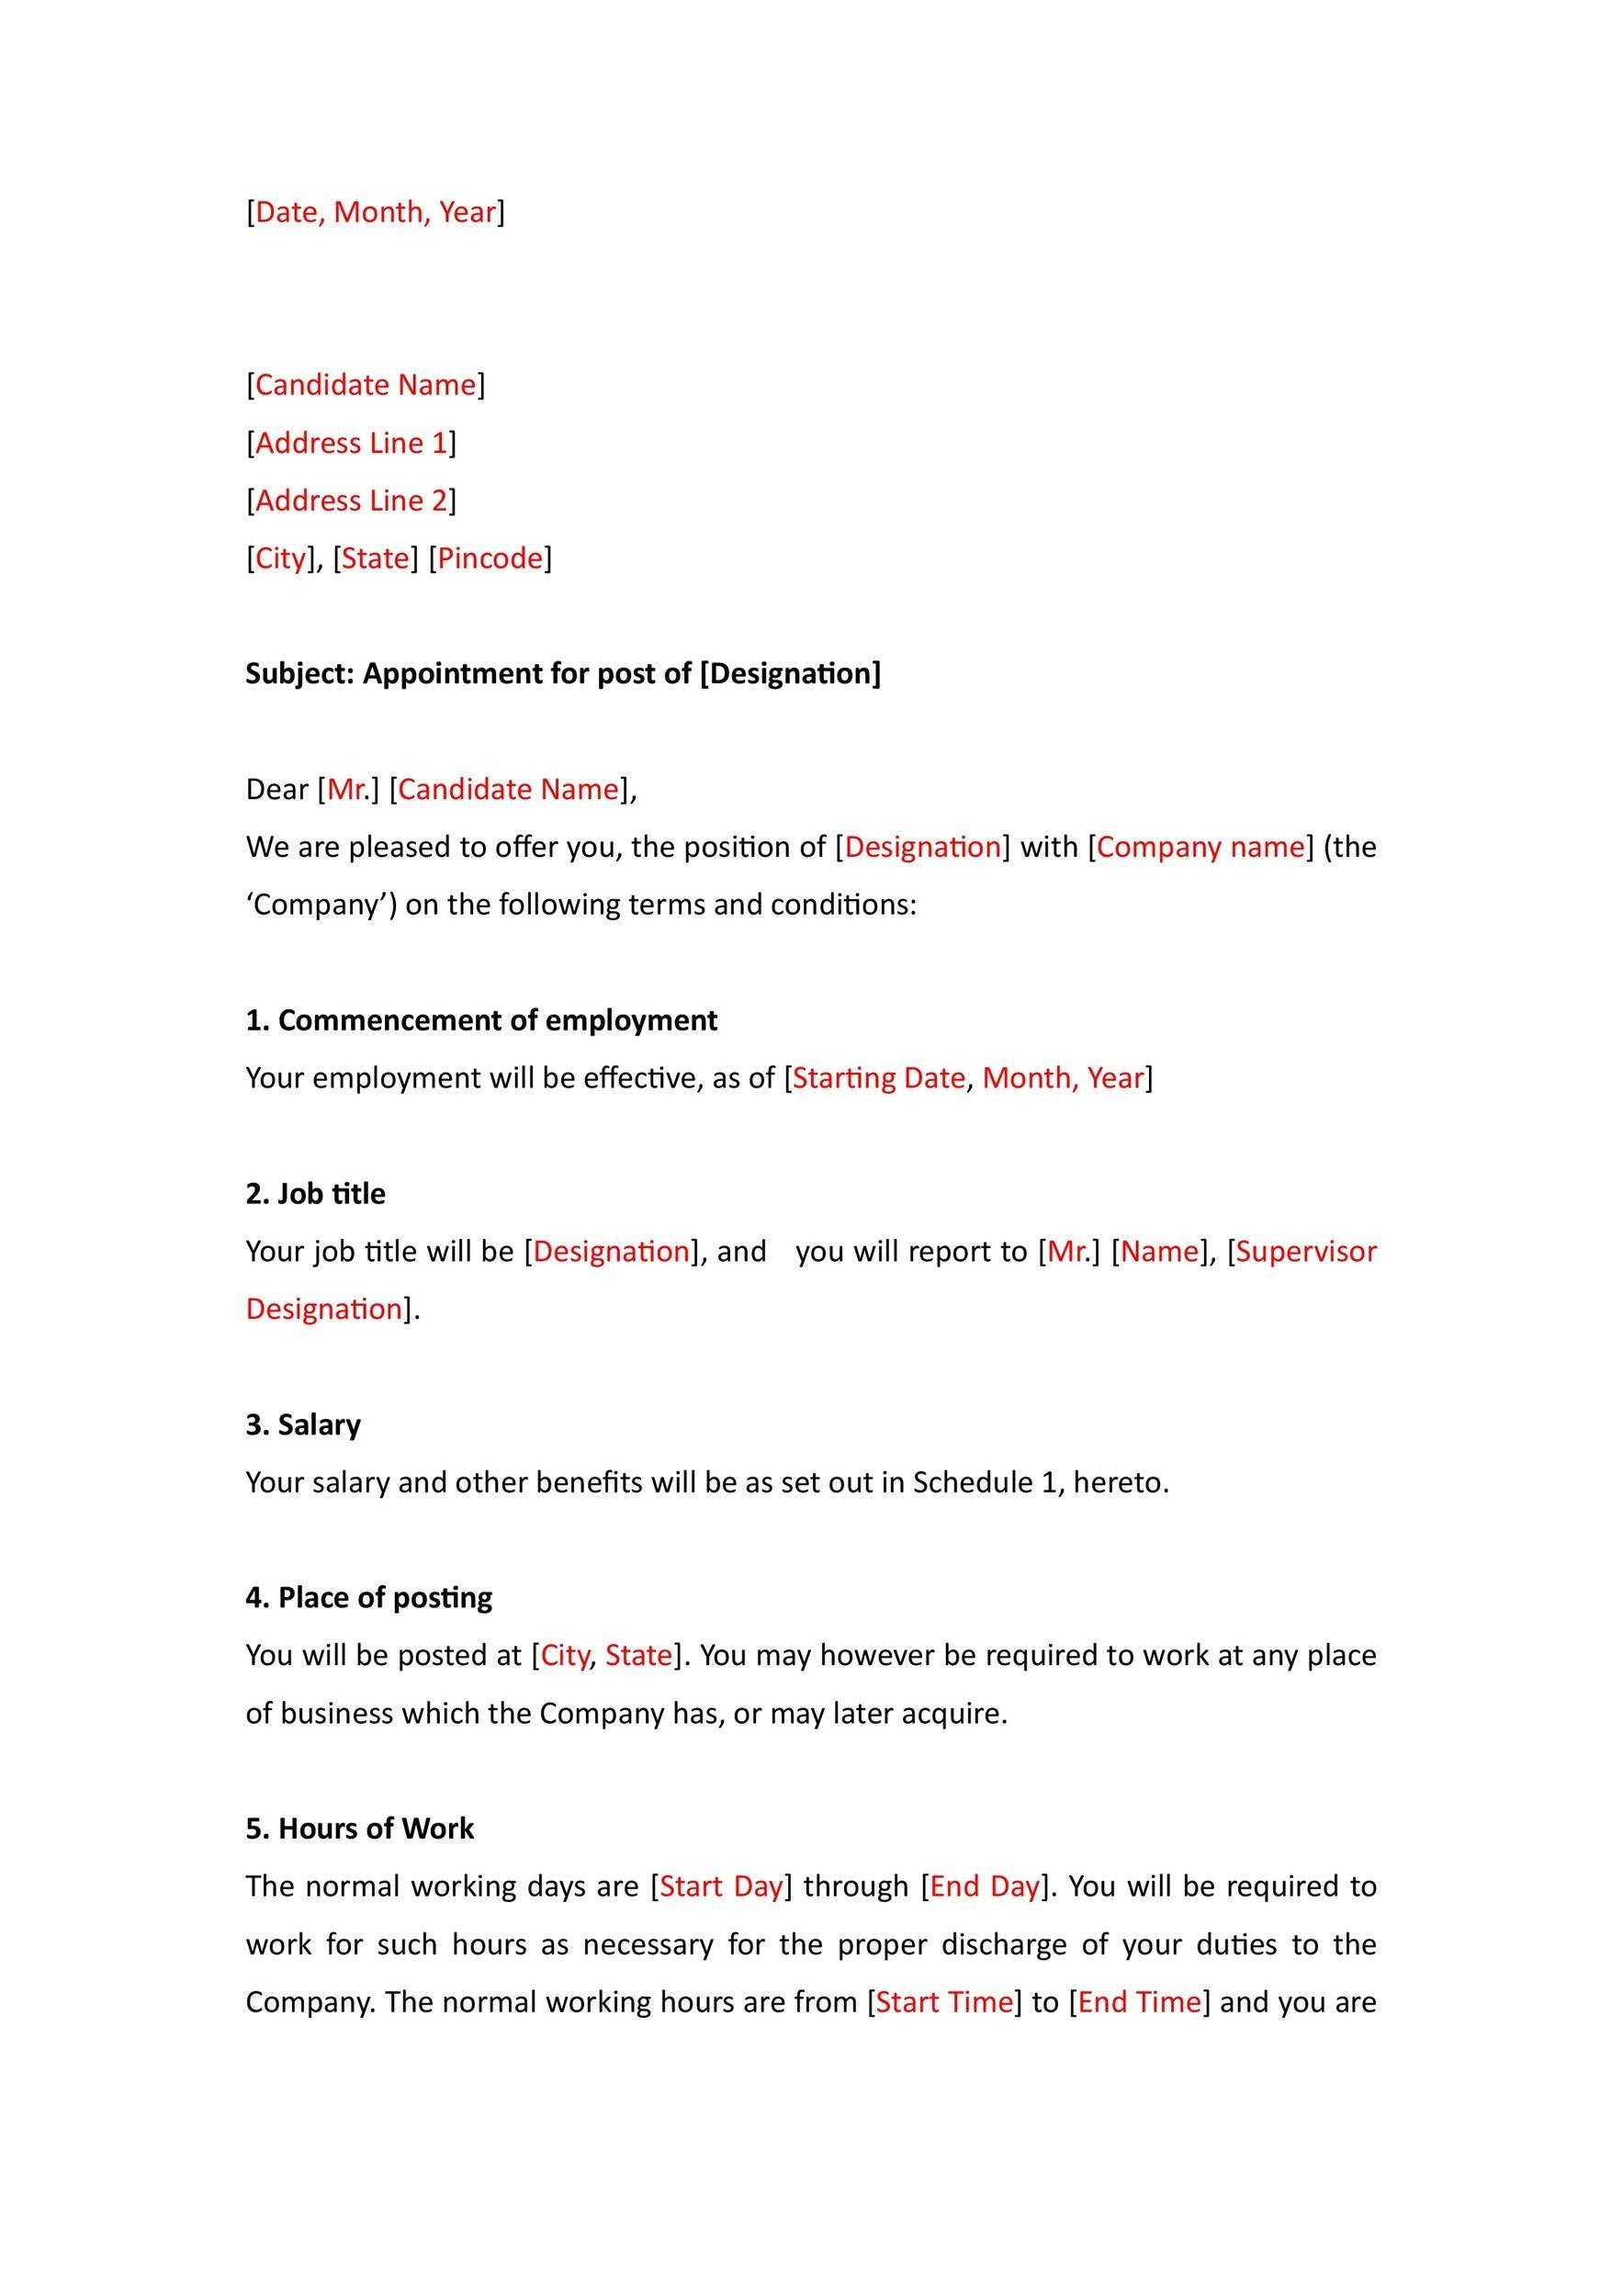 35 Formal Business Letter Format Templates Amp Examples ᐅ